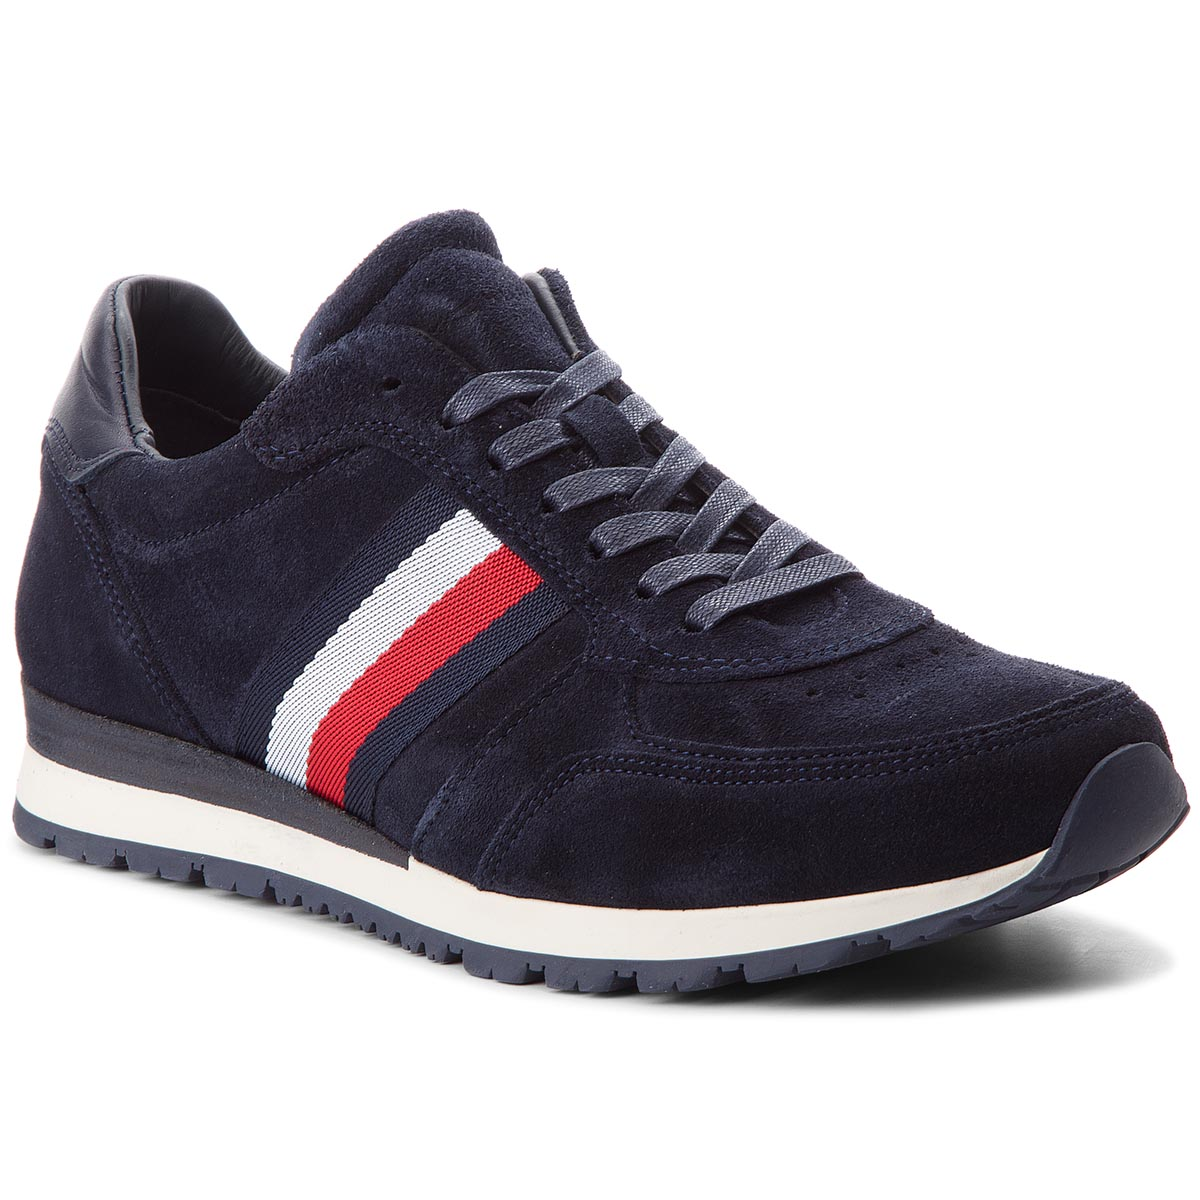 Light Sneakers Sneaker Casual Em0em00261 Tommy Jeans 7vbgyY6f